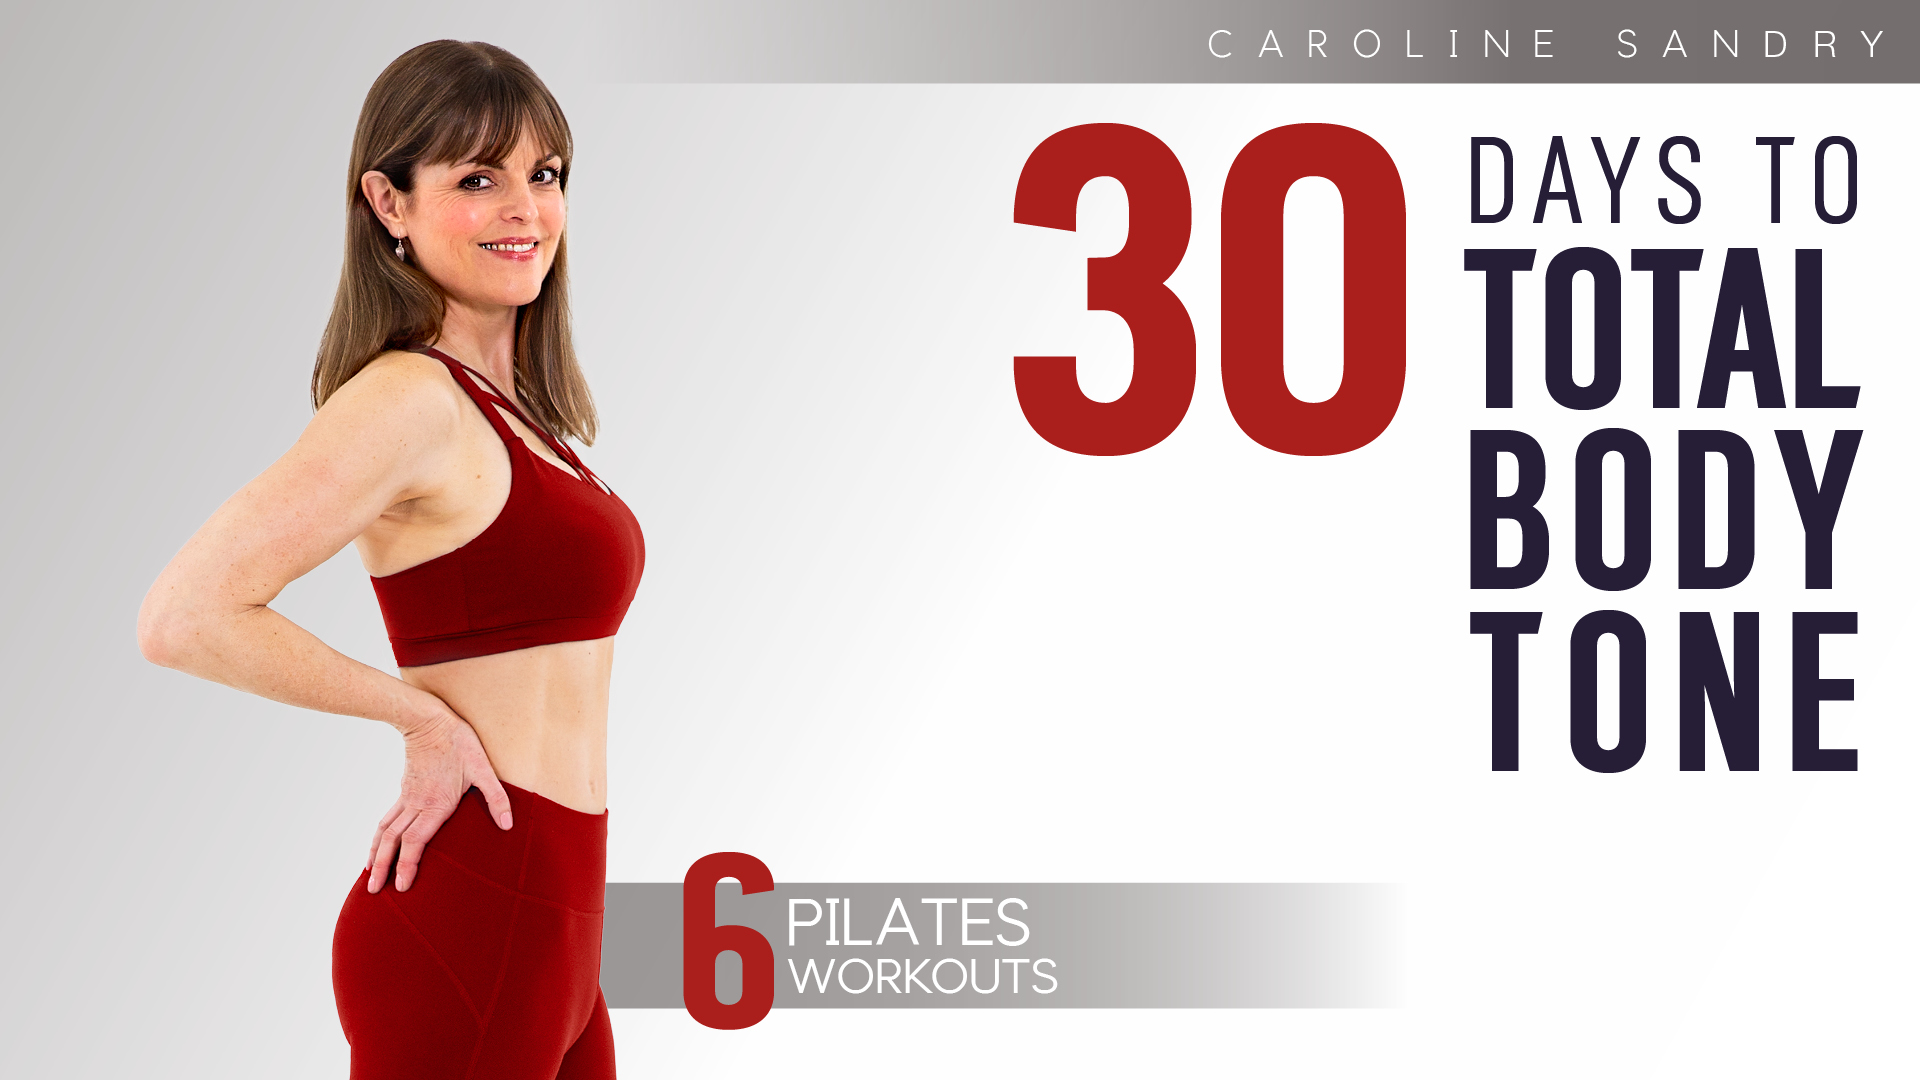 30 Days to Total Body Tone Pilates with Caroline Sandry